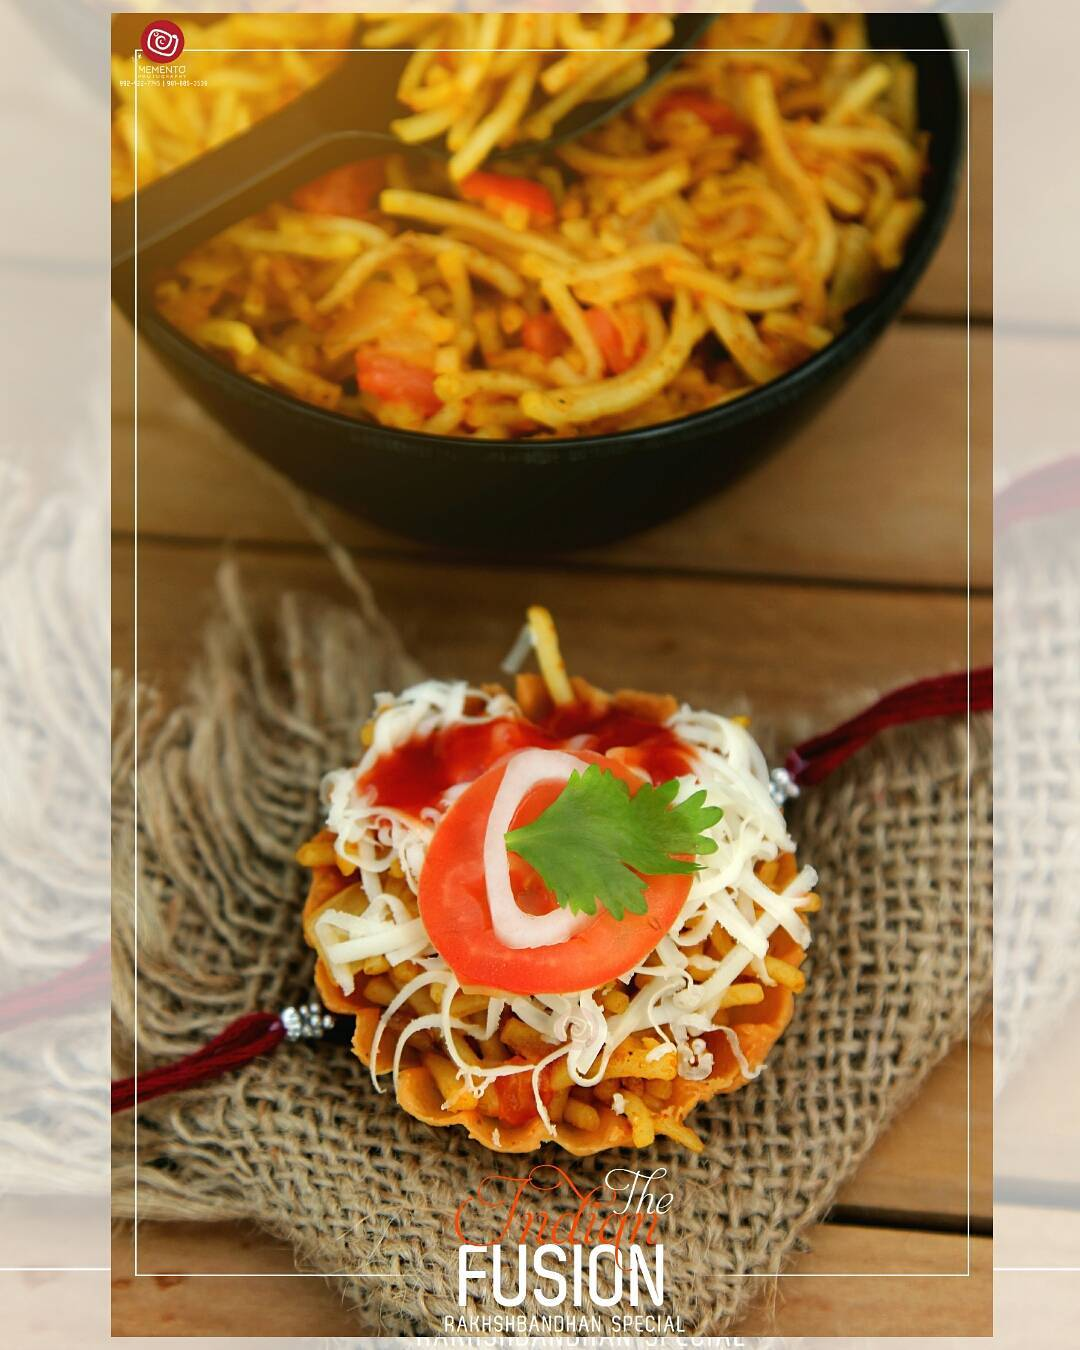 Basket chat with Chinees &  Panjabi Fusion ... Rakhi special.  #happyrakshabandhan #happyrakhi #indianfestival  #foodphotography #happymood #newbeginning  #happiness #foodpic #foodoftheday #foodlover #foodie #foodlove #foodporn #aighungrito #productPhotography #Productshoot #foodClicks  #fooddi #happyPeople #hungrito #picoftheday #photoholic #magazine #magazineshoot  #magazinephotography #ahmedabadifoodholics #ahmedabad #ahmedabadfoodphotographer #DipsPhotography | #mementophotography